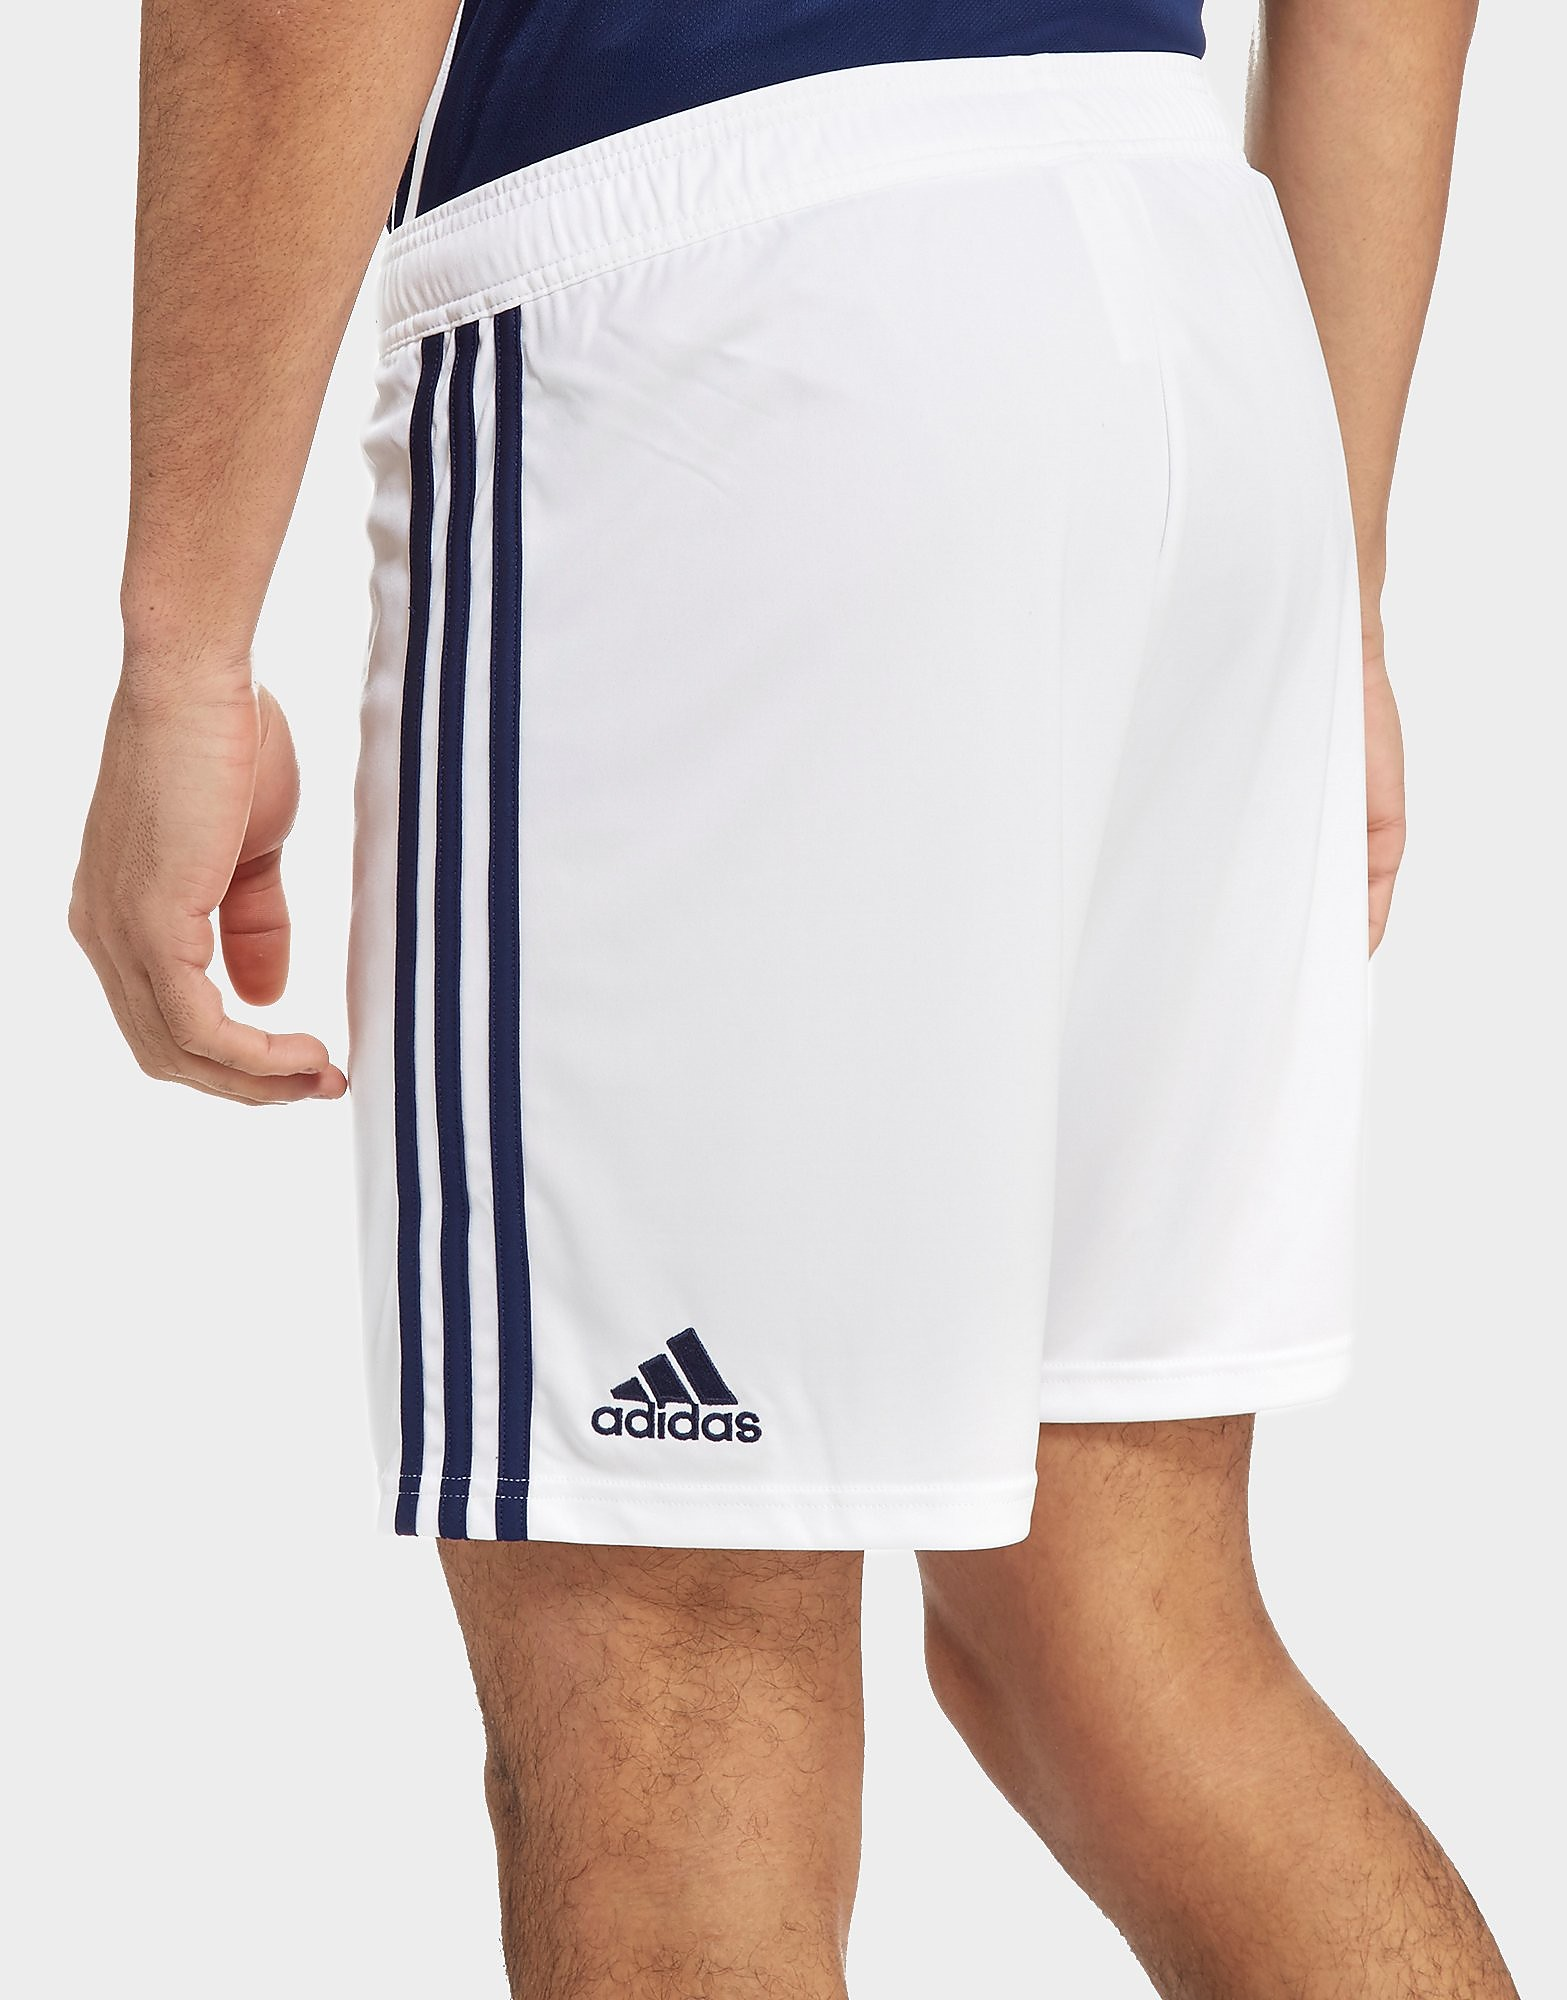 adidas Scotland 2018 Home Shorts PRE ORDER